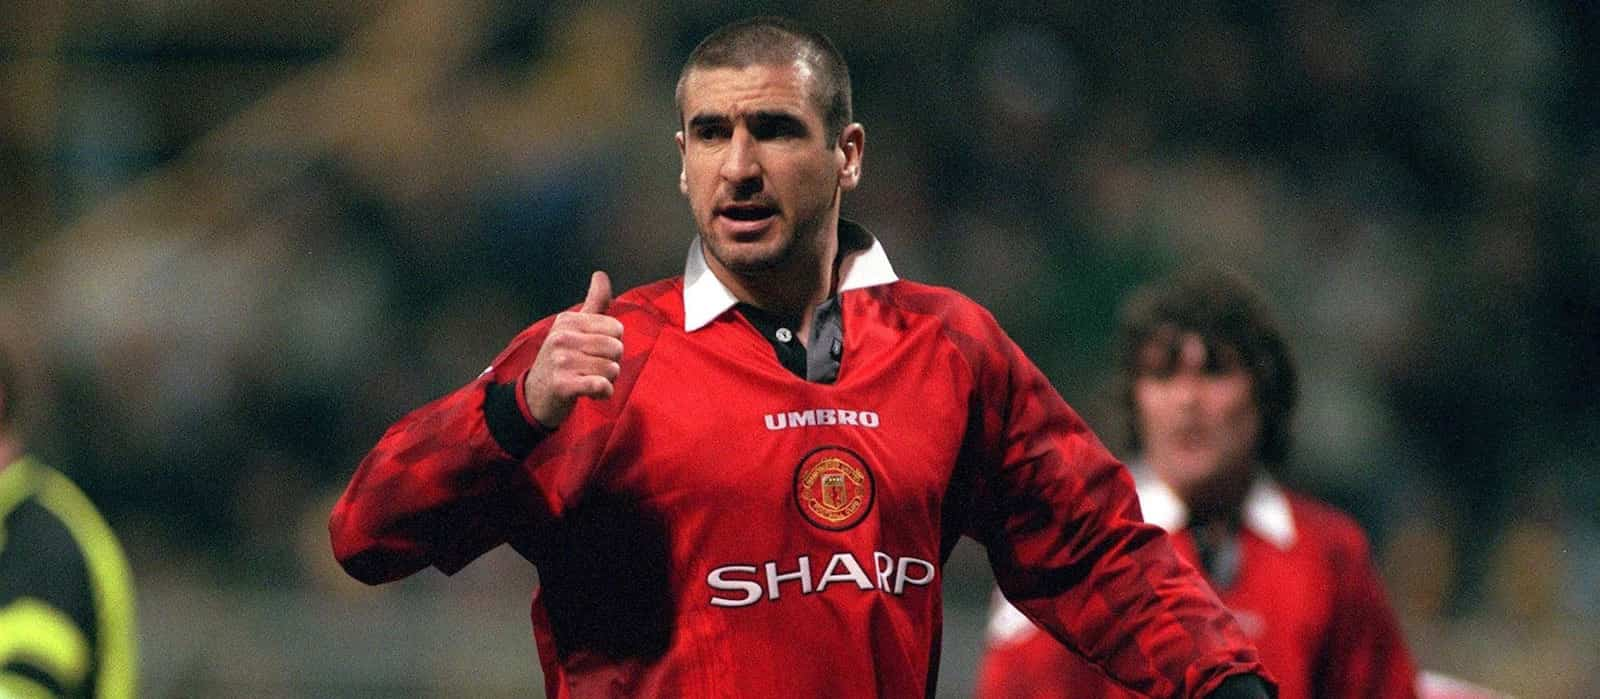 Eric Cantona remains as enigmatic as ever with new Instagram post